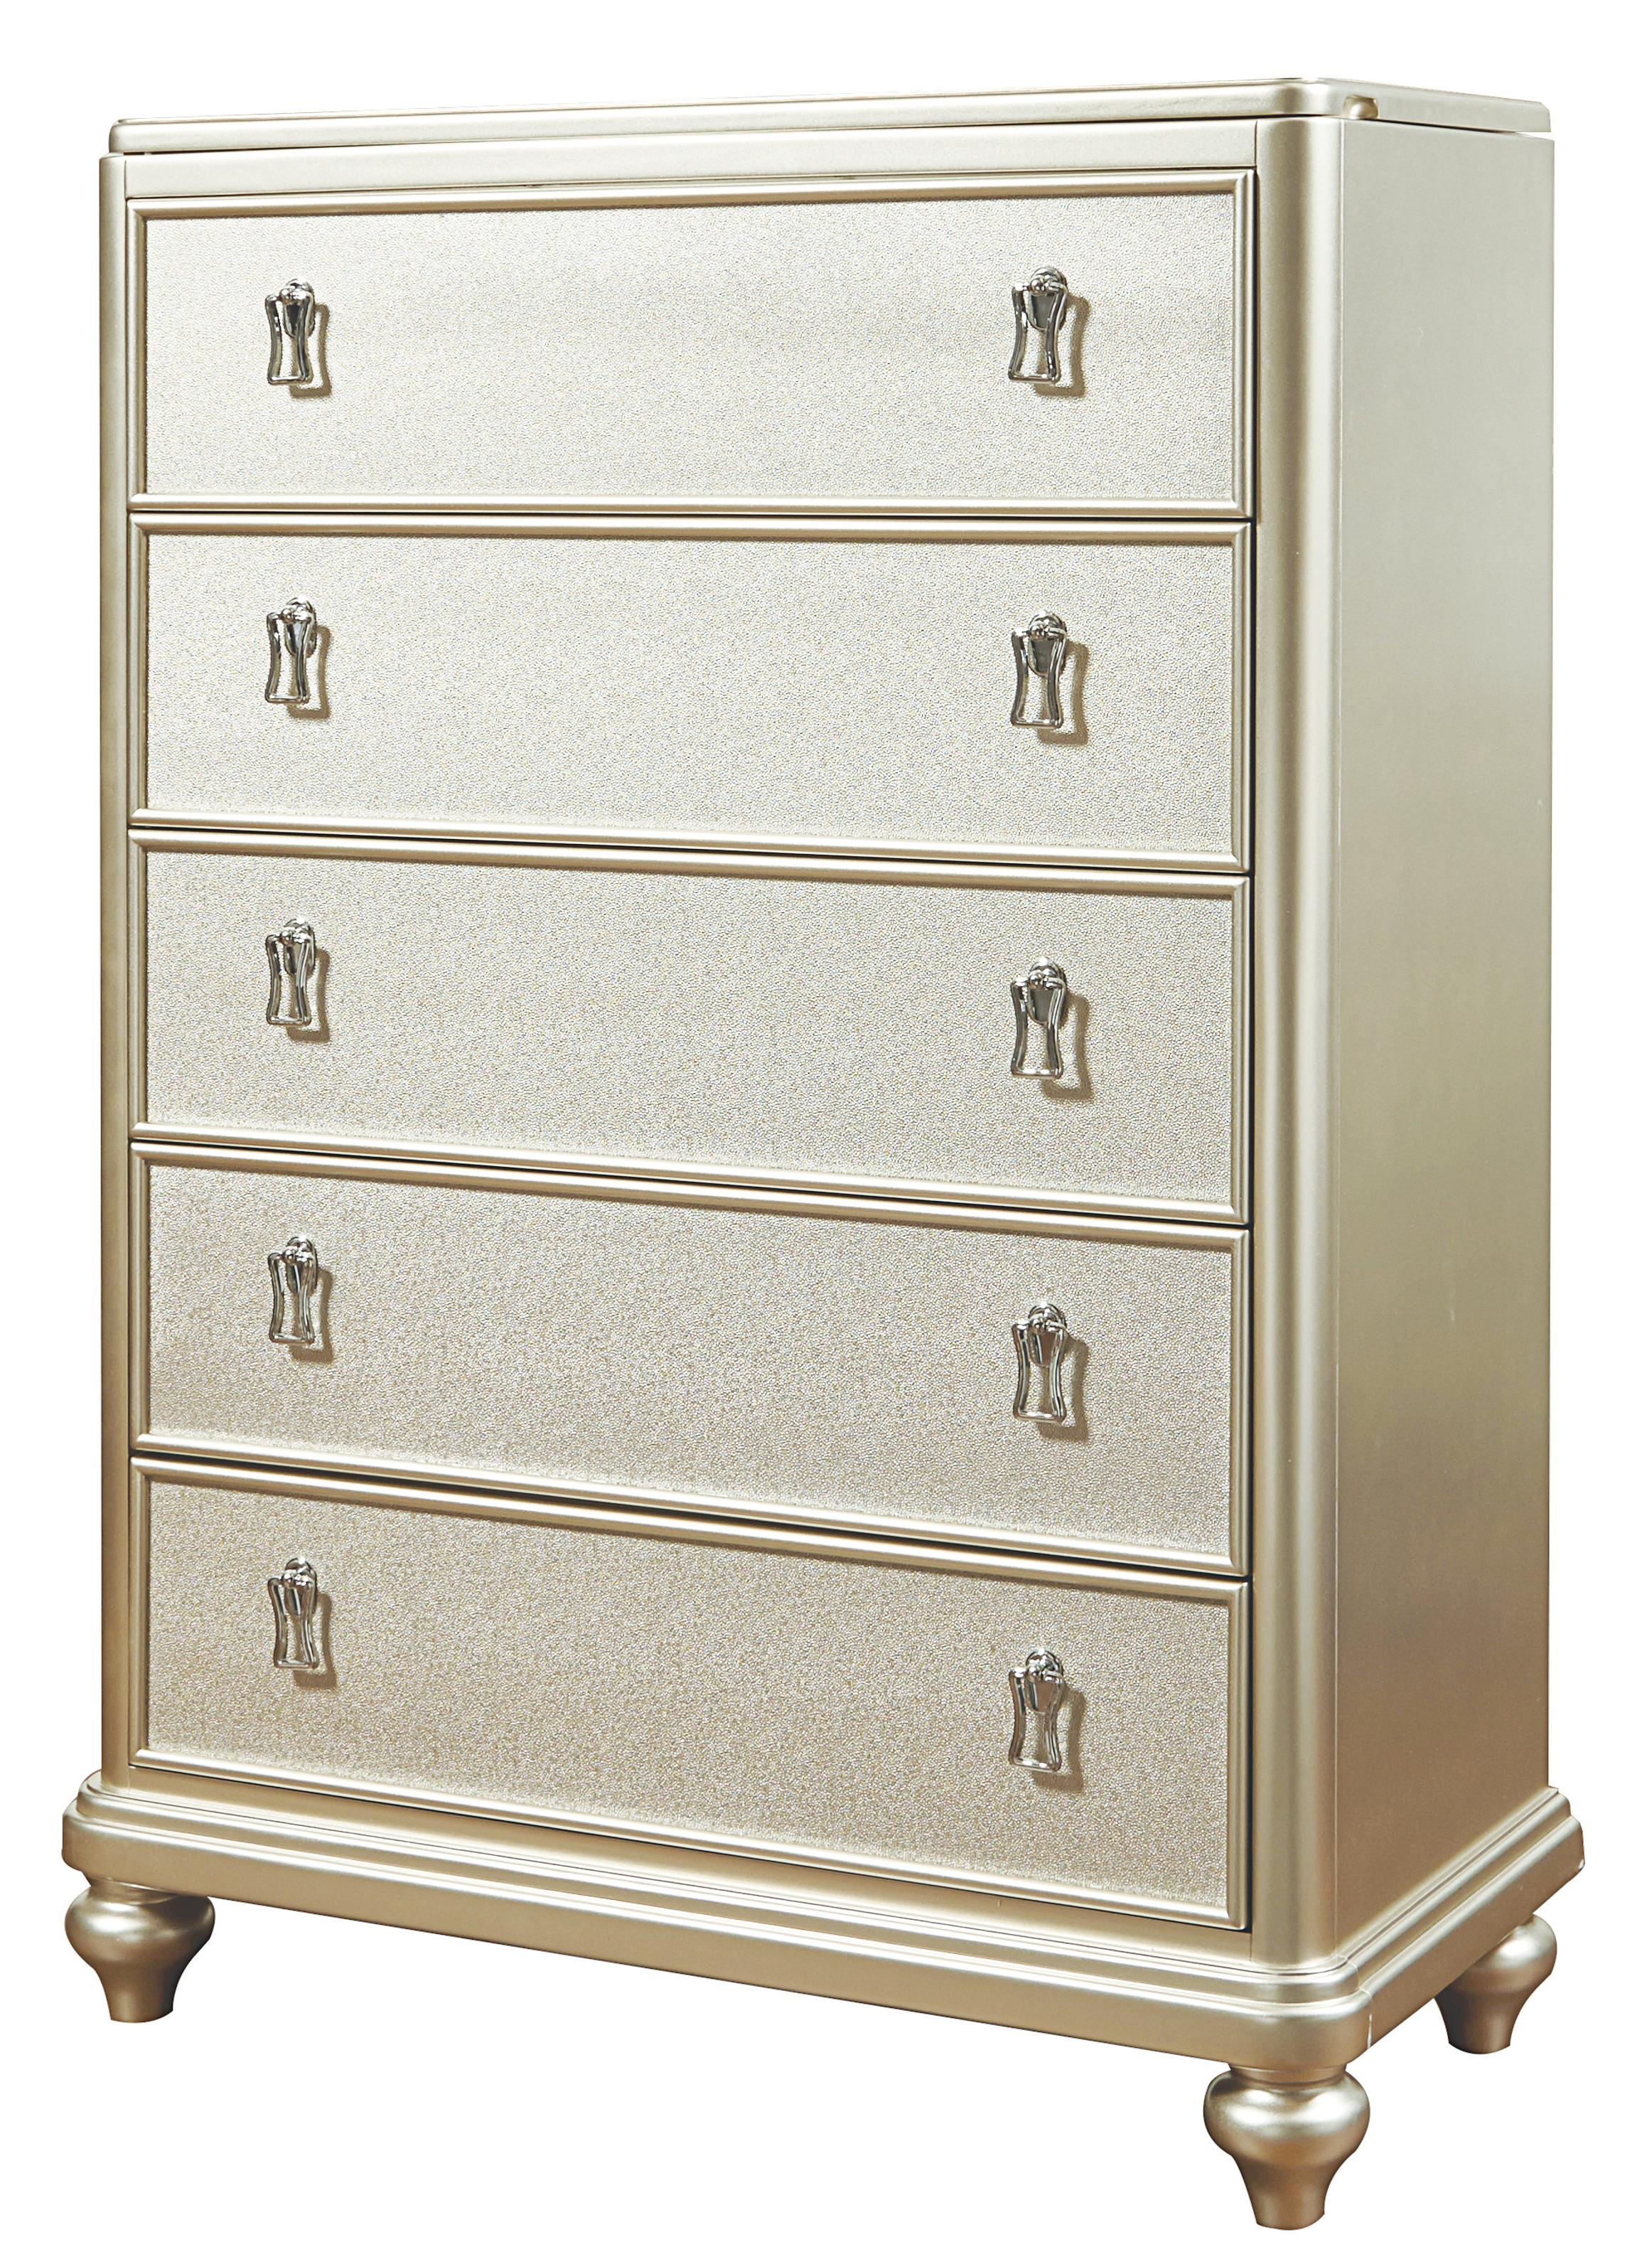 standard jessica chest item number oval drawer furniture drawers mirror cupboard silver products of with